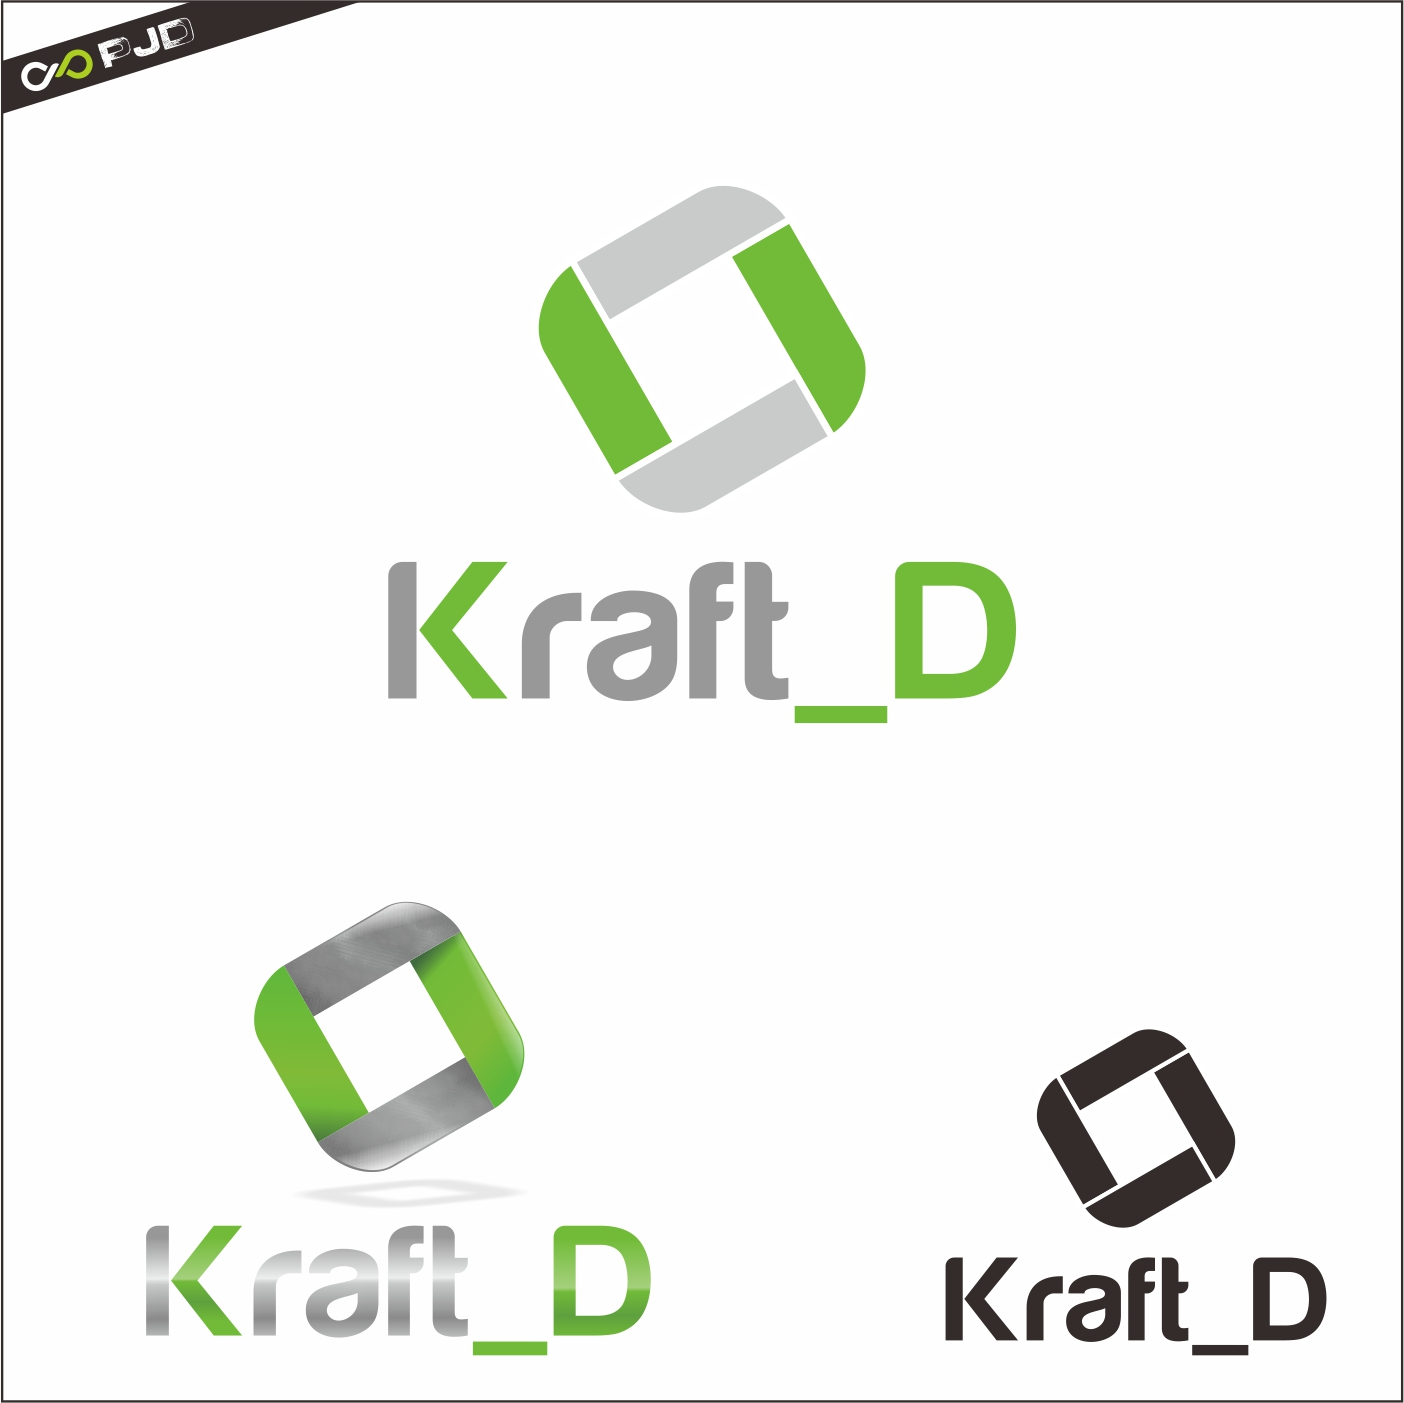 Logo Design by PJD - Entry No. 351 in the Logo Design Contest Unique Logo Design Wanted for Kraft D Inc.